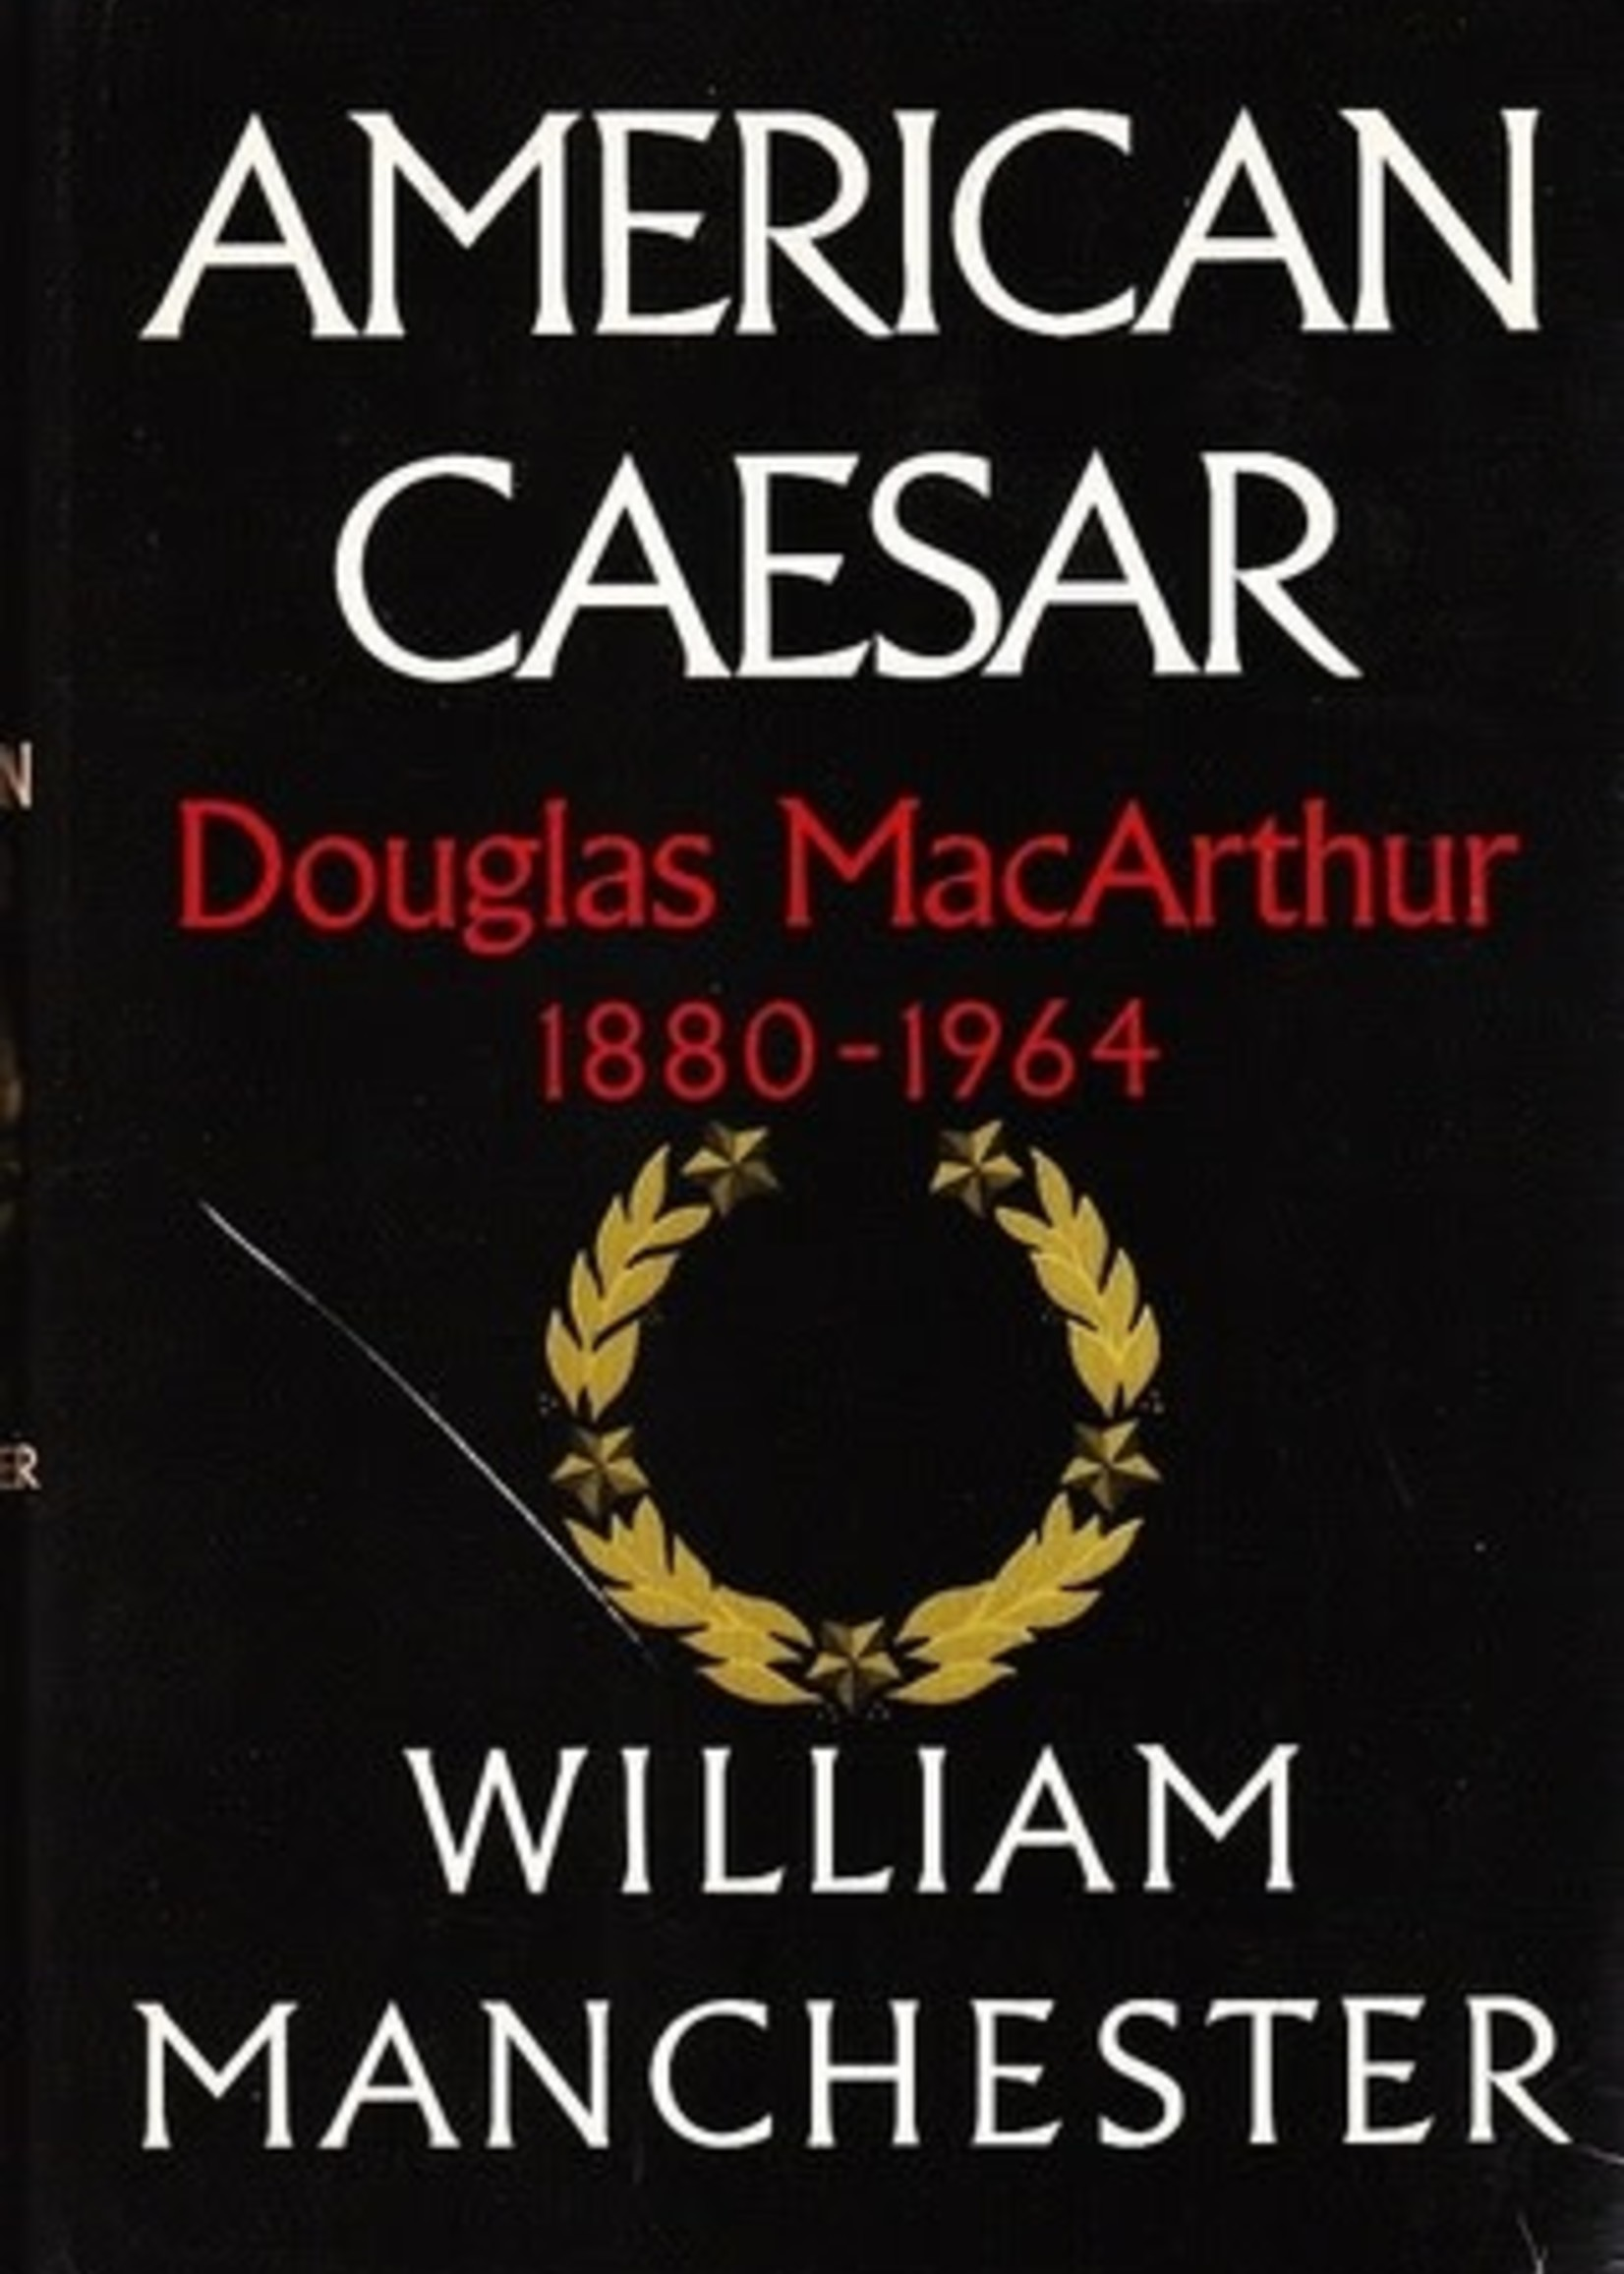 USED - American Caesar: Douglas MacArthur 1880-1964 by William Manchester